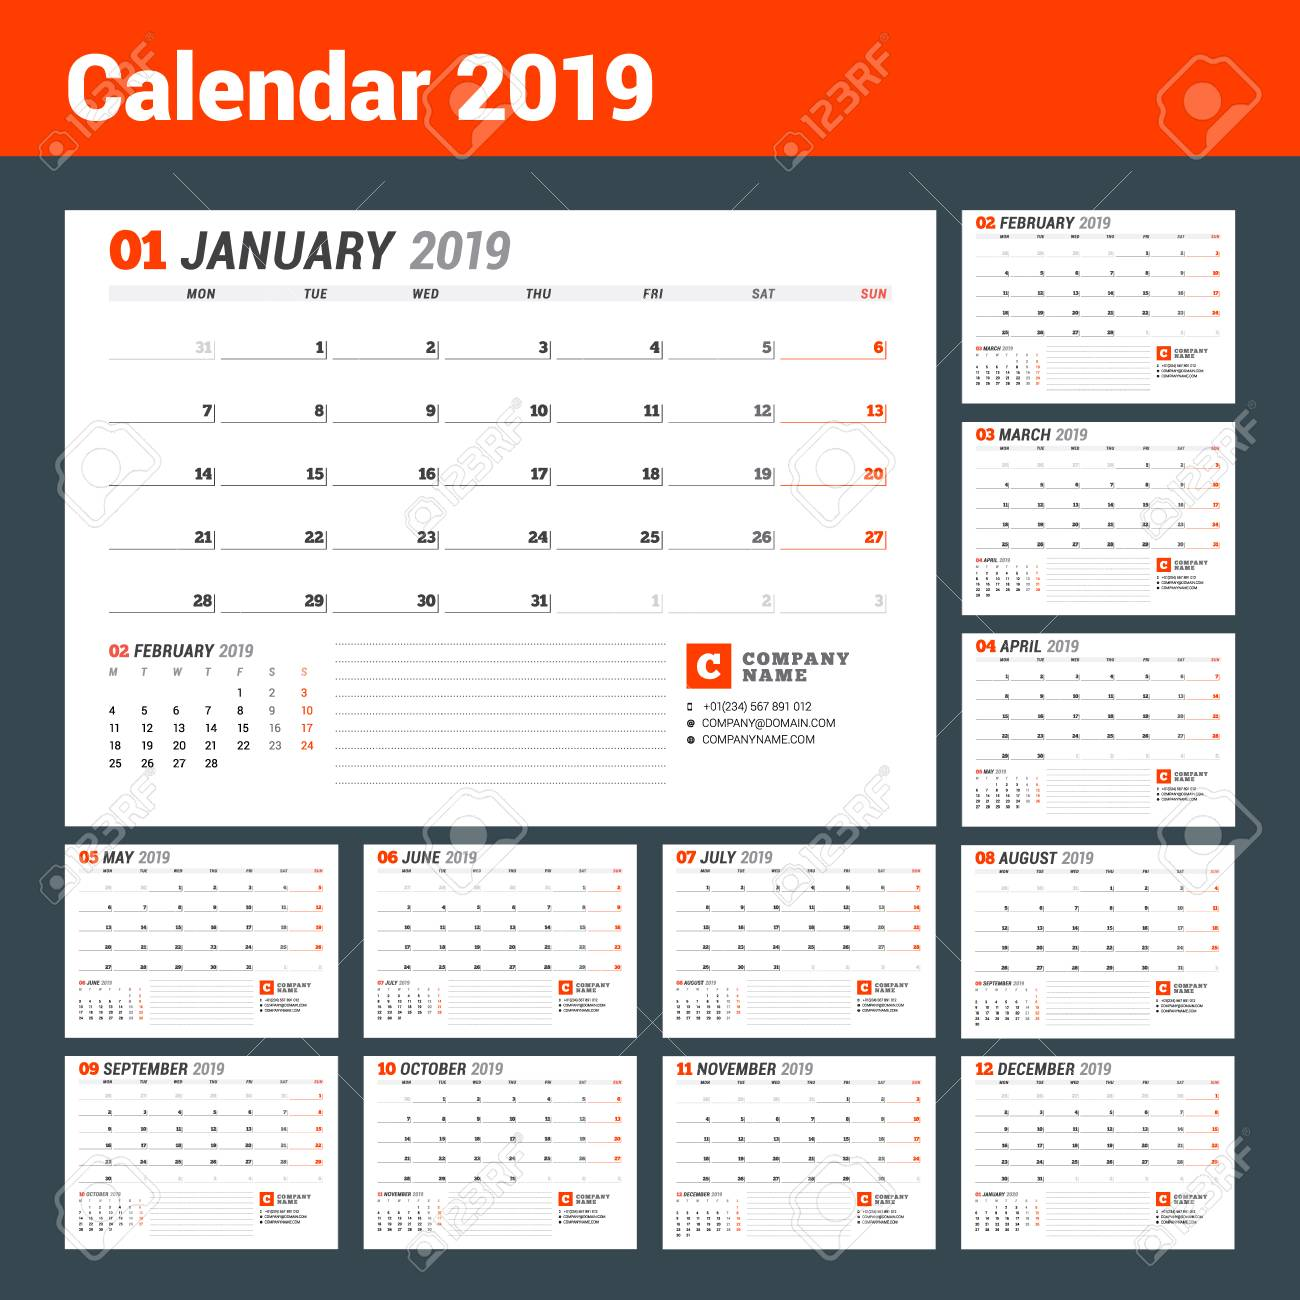 Calendar Template For 2019 Year Business Planner Stationery